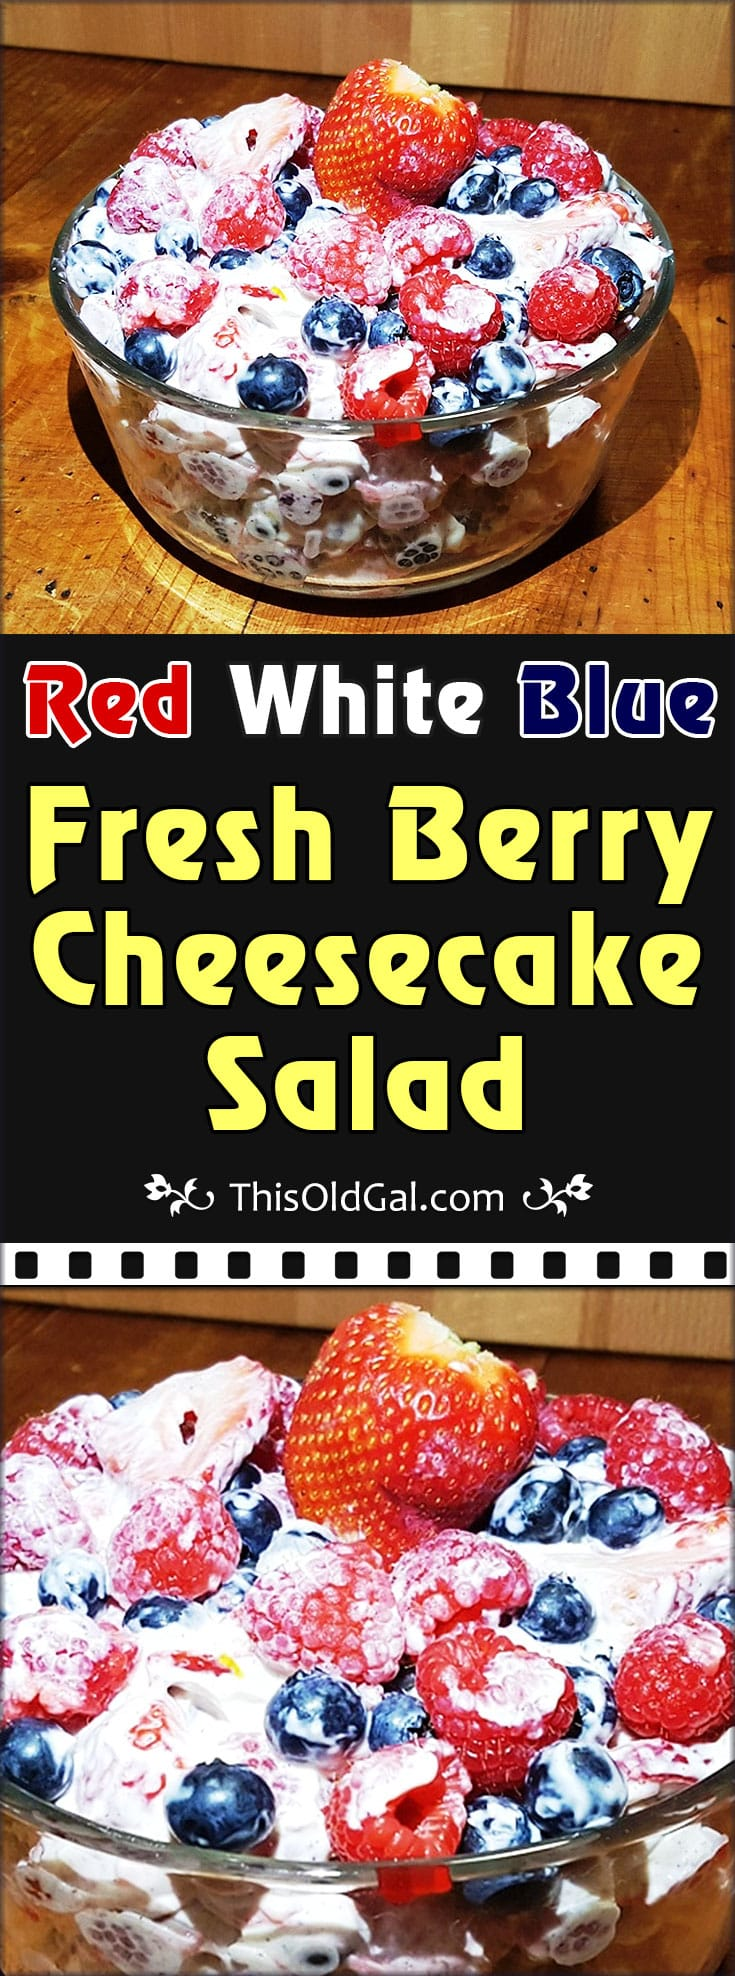 Red White Blue Fresh Berry Cheesecake Salad